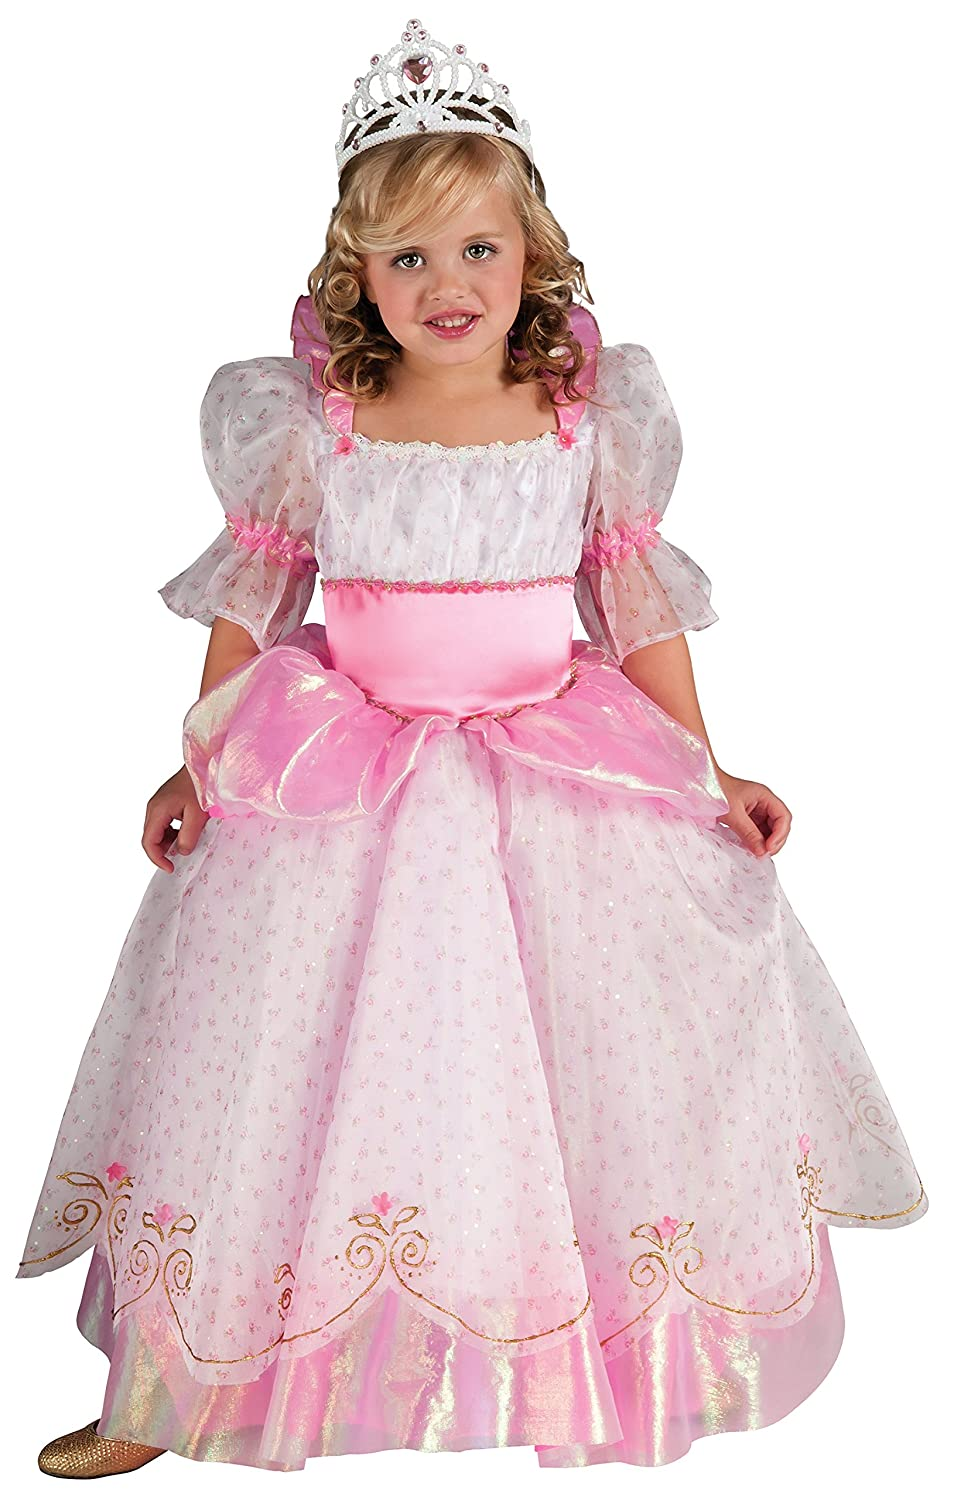 Rubies Costume Pink Princess Costume, Small Rubies Costume Co (Canada) 881226